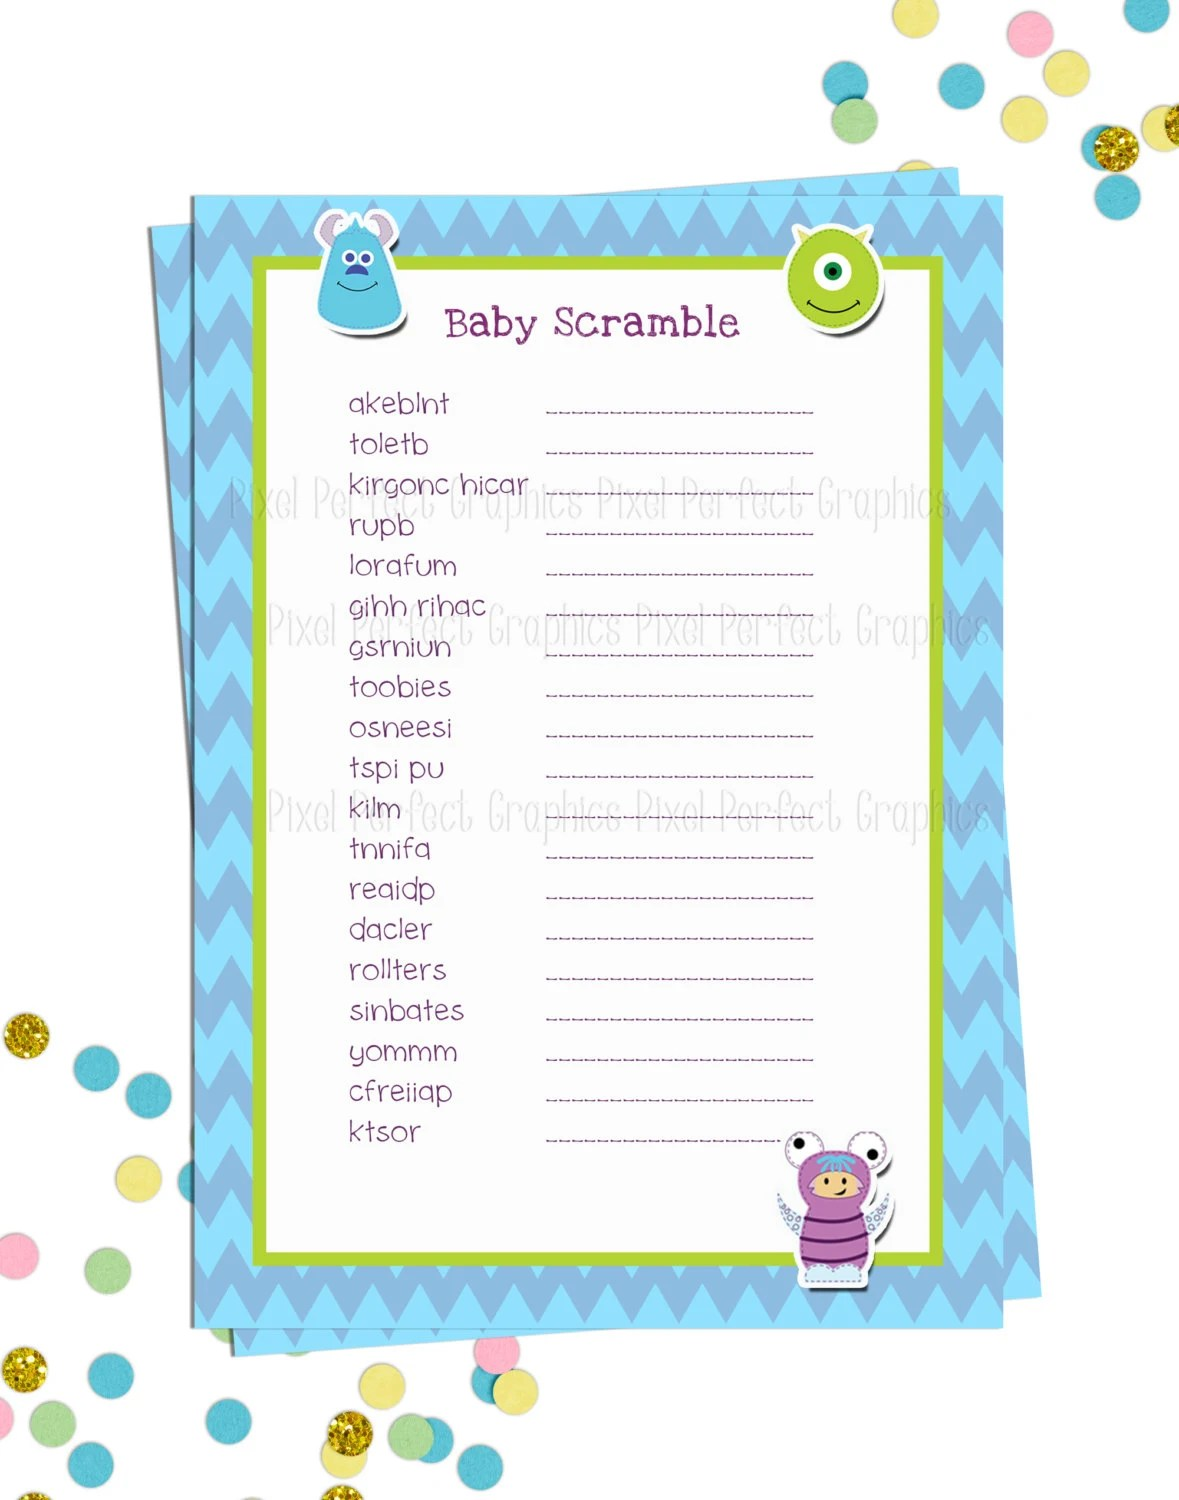 Monsters Inc Themed Baby Shower Baby Scramble Game Printable